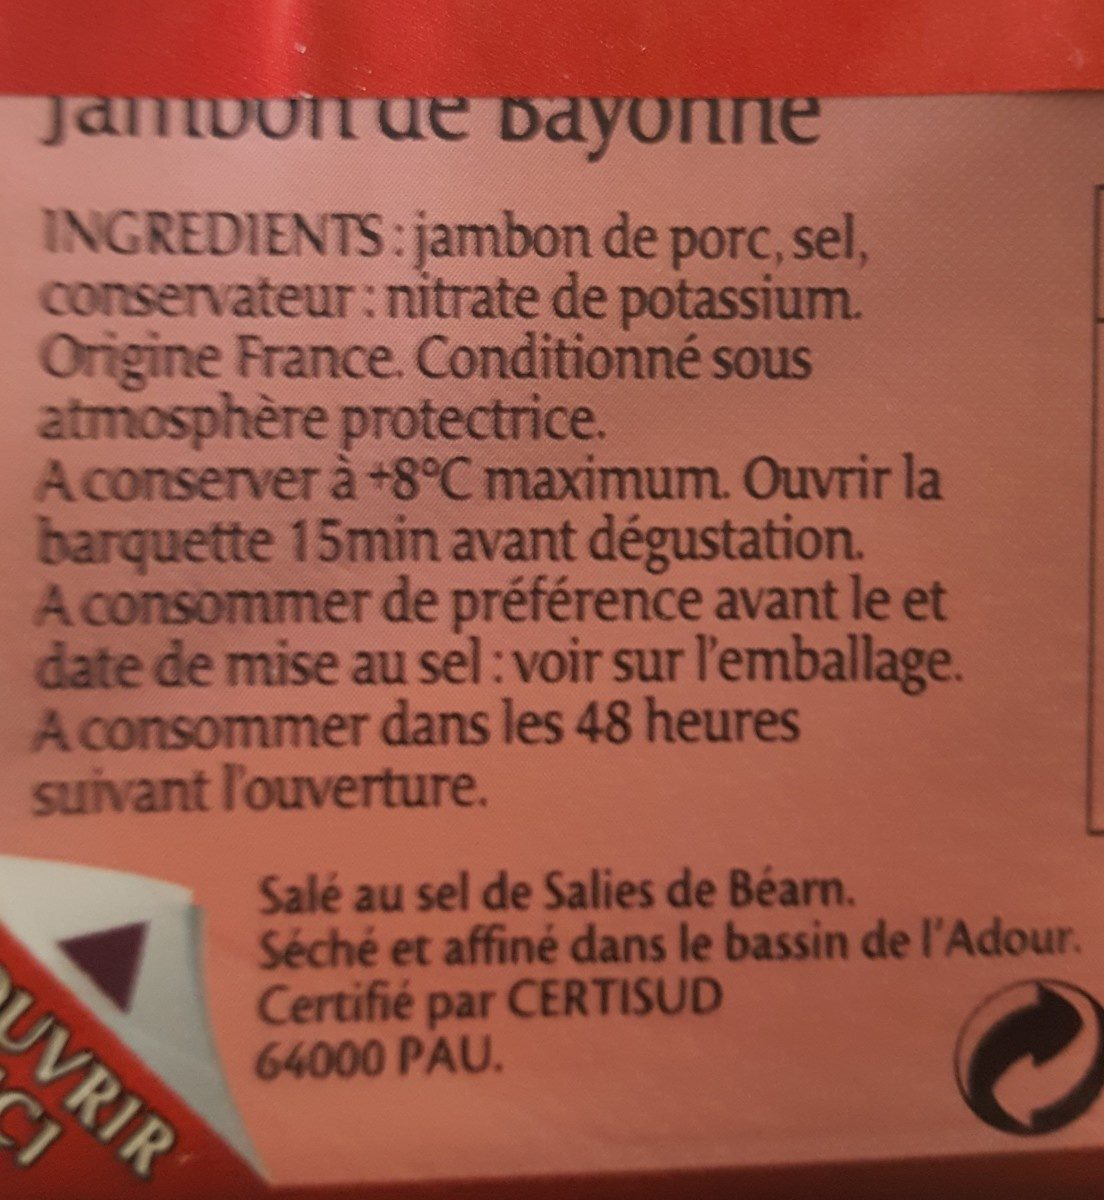 Le Jambon de Bayonne - Ingredients - fr